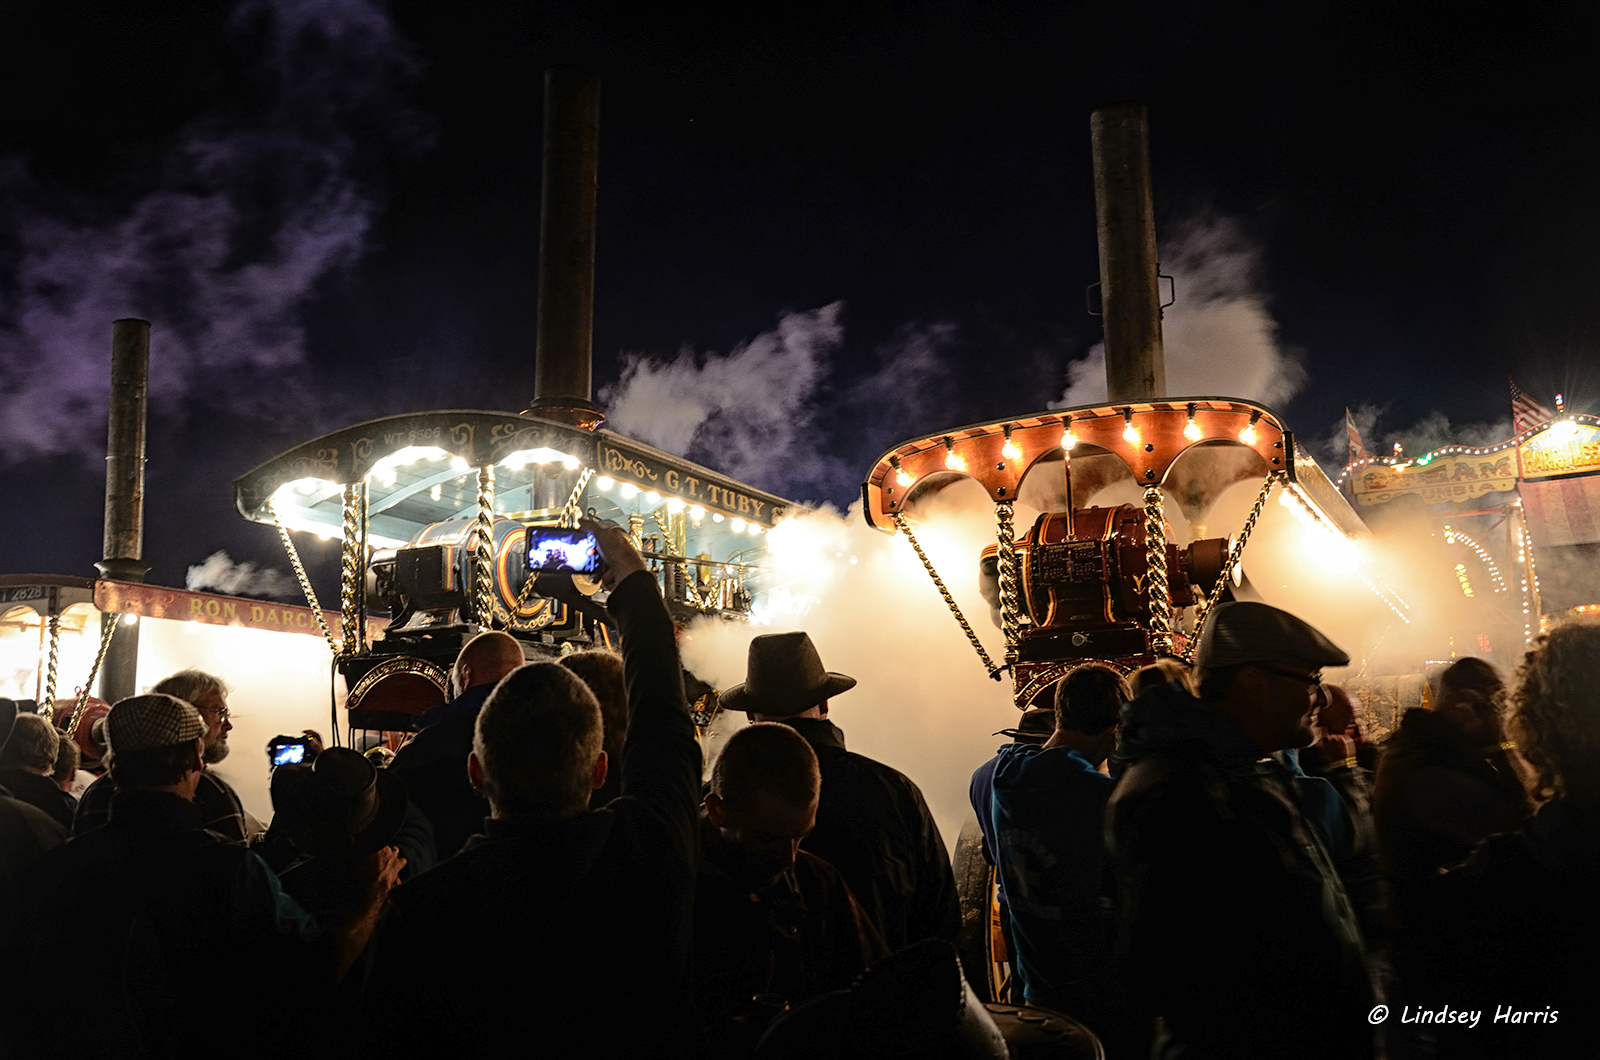 Midnight whistles of steam engines at the Great Dorset Steam Fair, 2012.